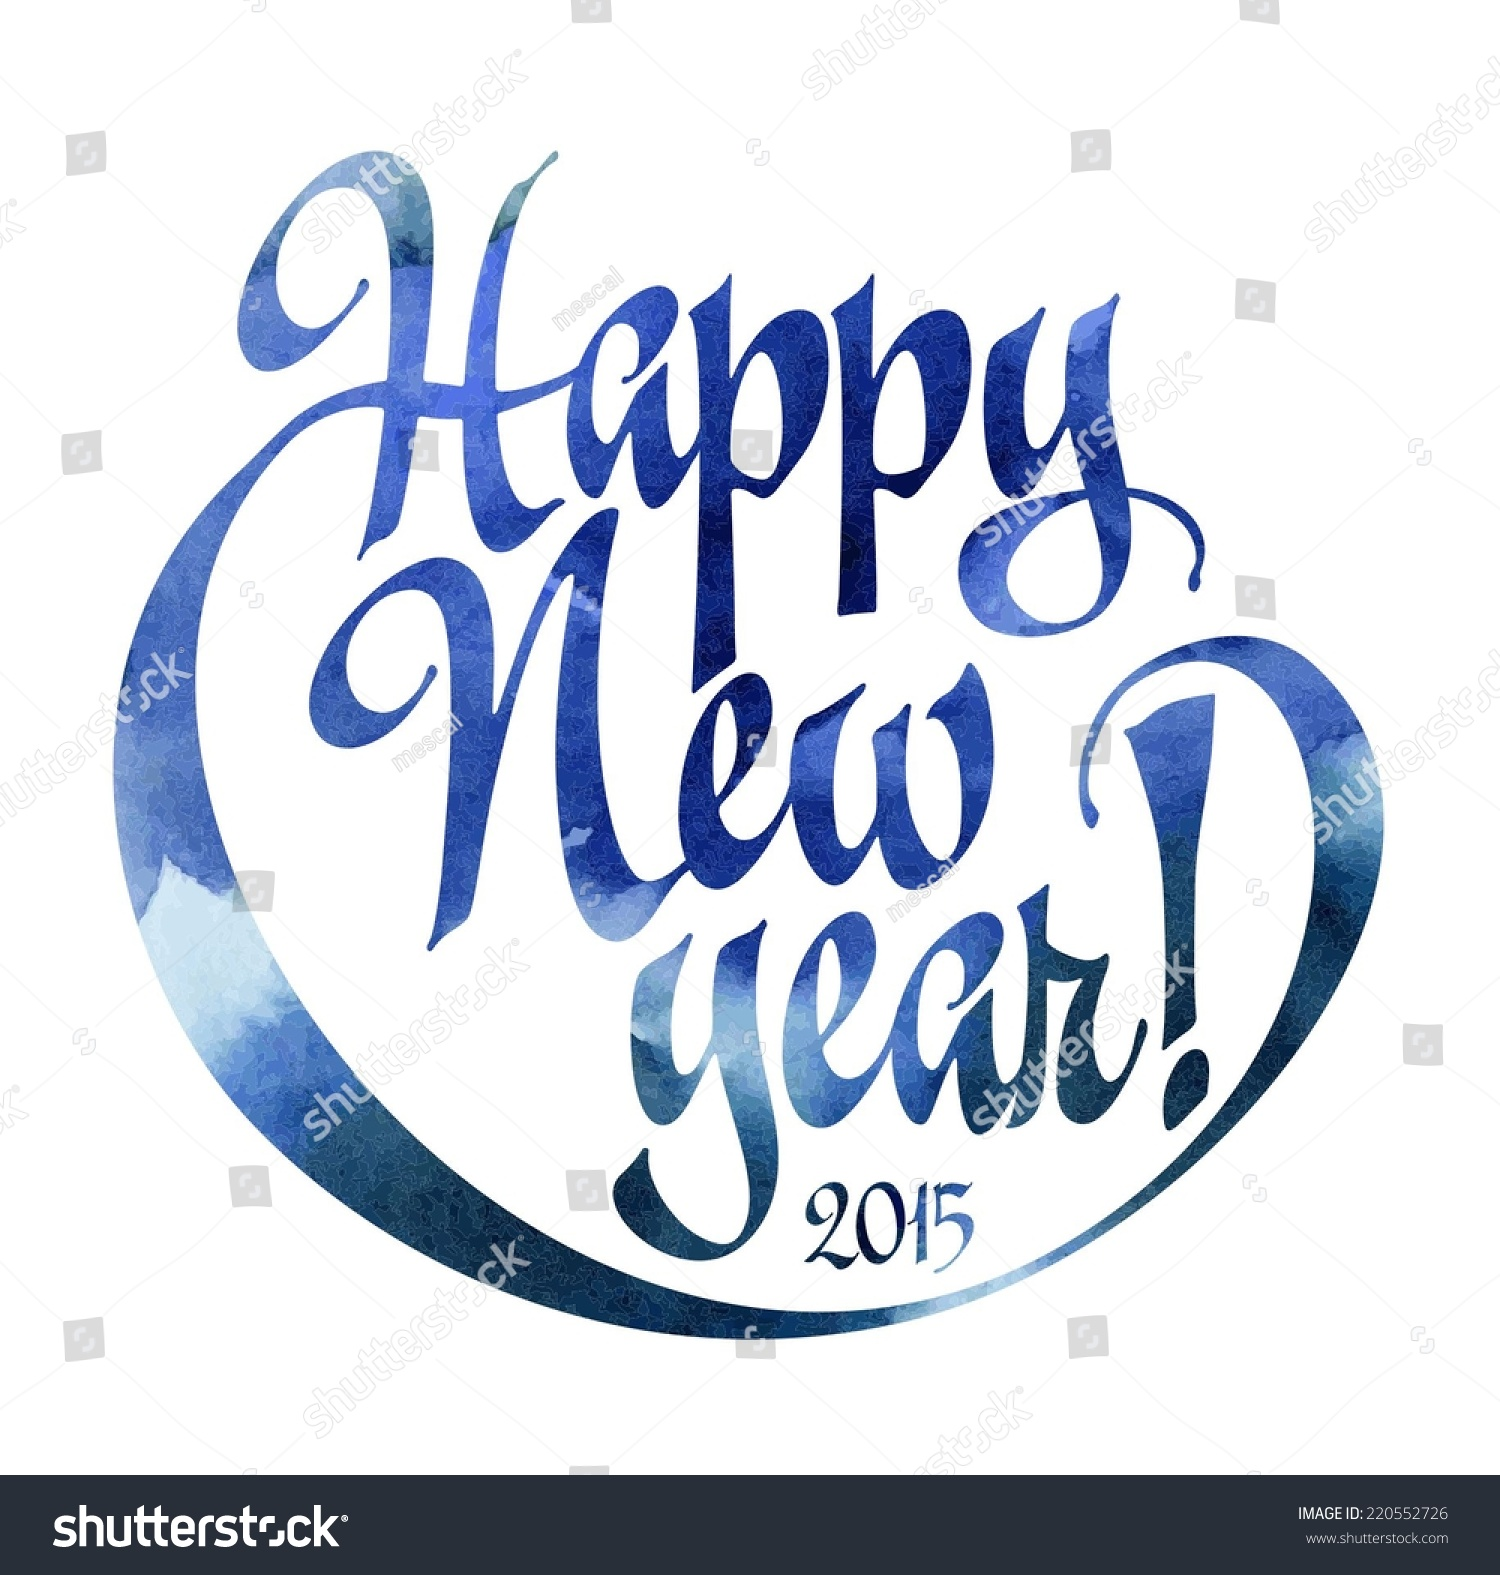 Happy new year calligraphic writing greeting stock vector royalty happy new year calligraphic writing for greeting cards and posters vector image with watercolor background m4hsunfo